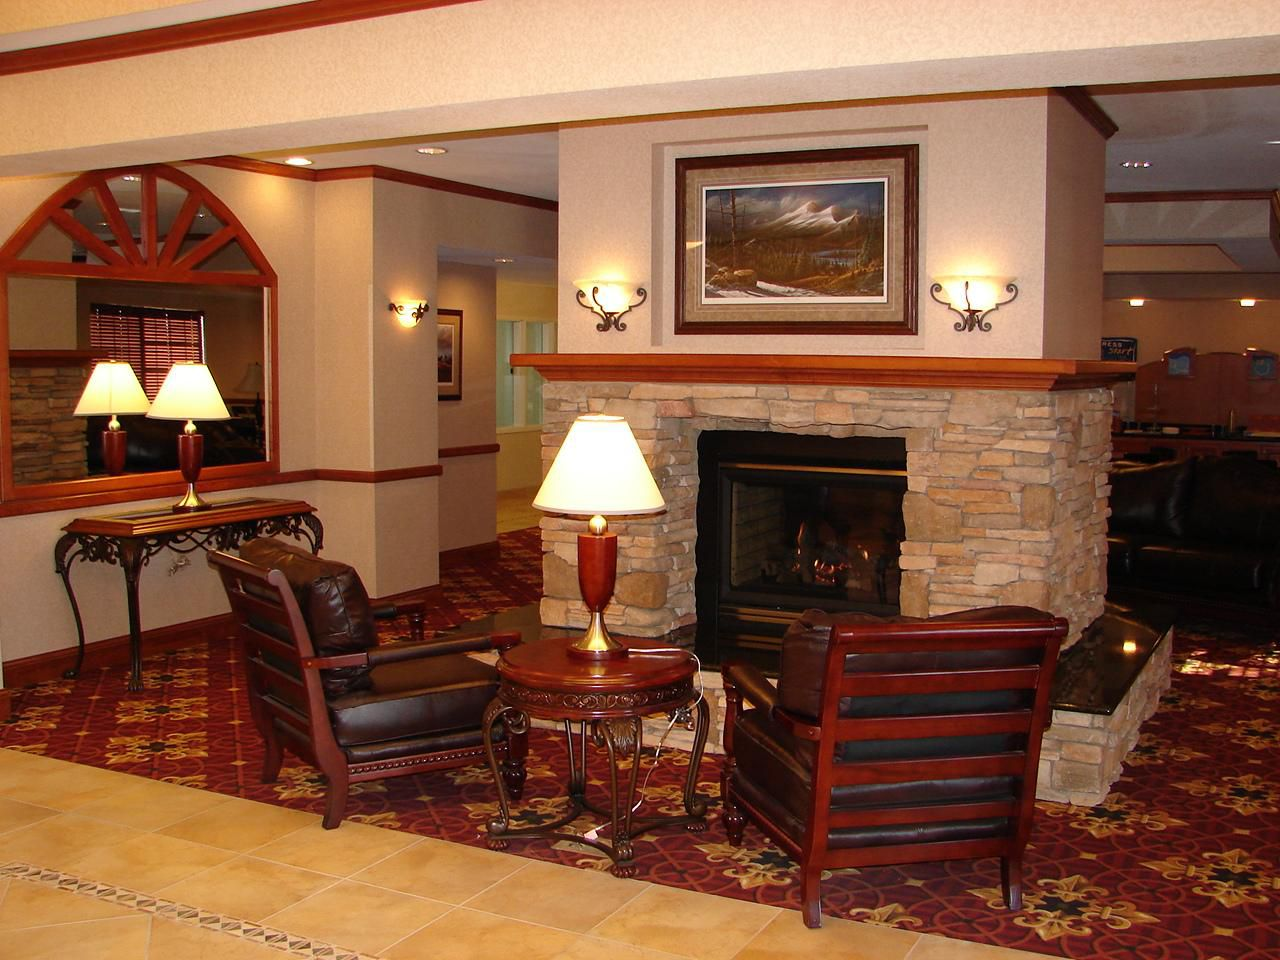 Fort Collins Hotel, minutes from shopping and restaurants